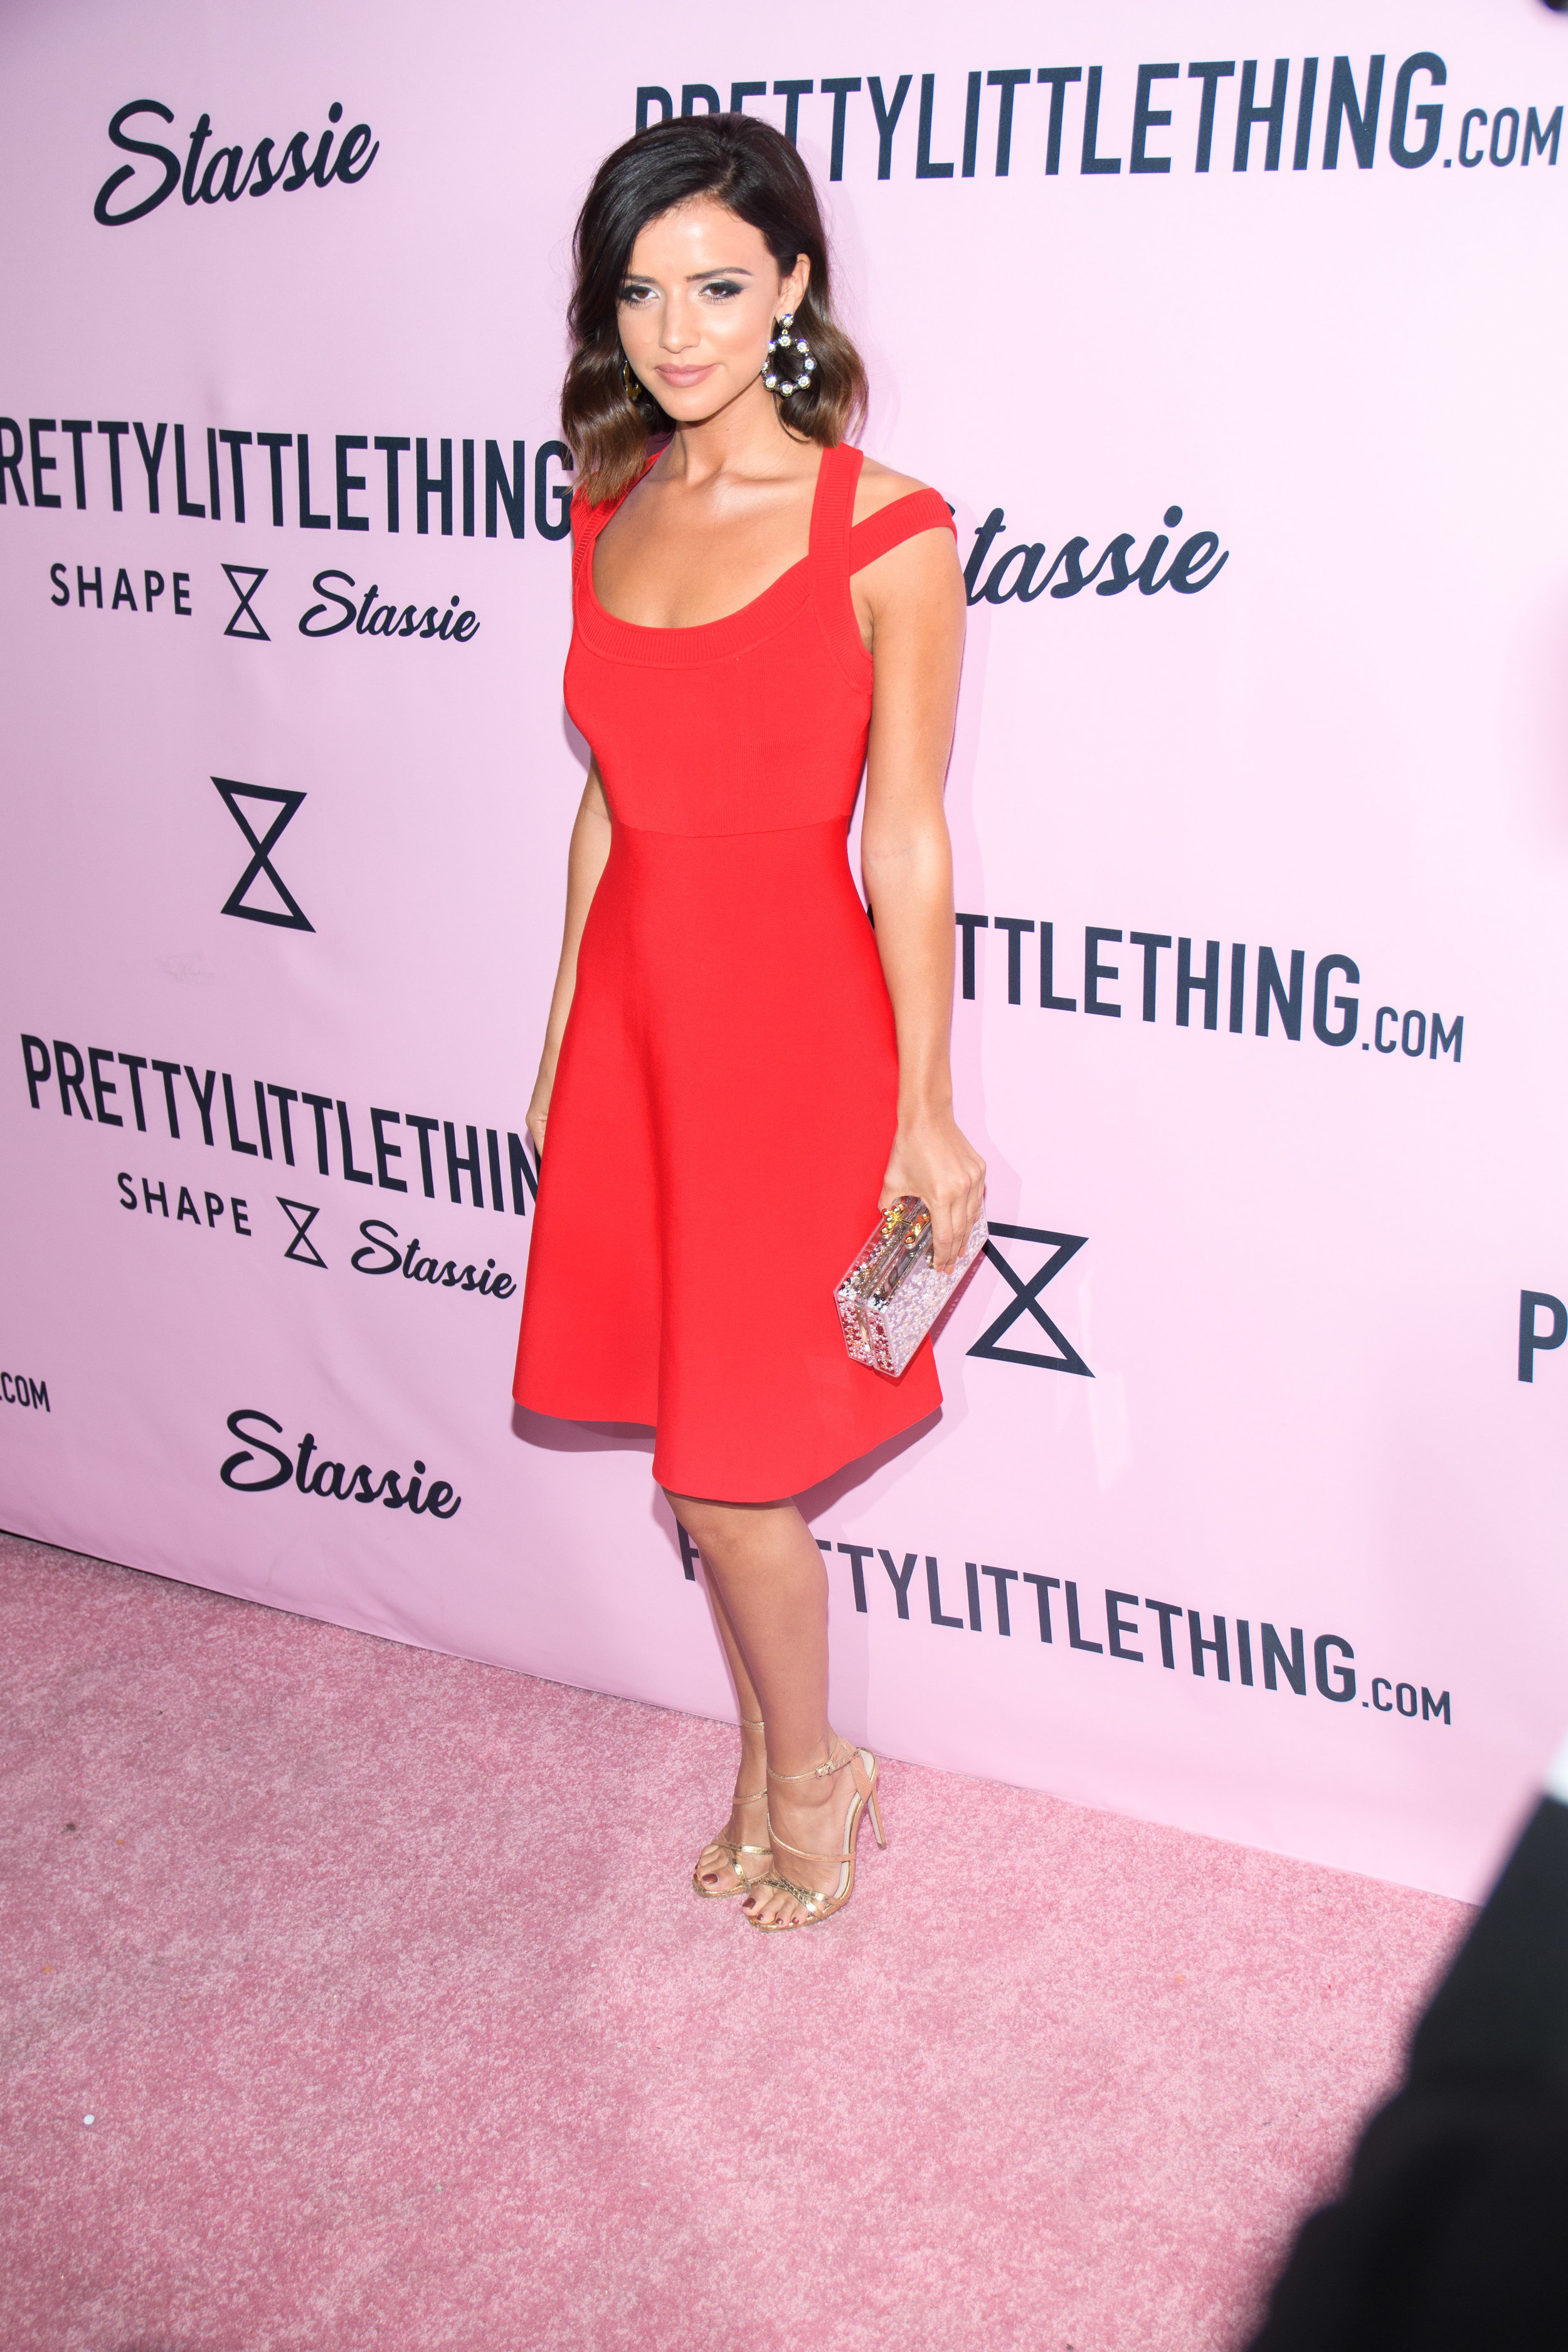 PrettyLittleThing New PLT Shape Collection with Stassie Celebrity Launch Party Lucy Mecklenburgh.jpg